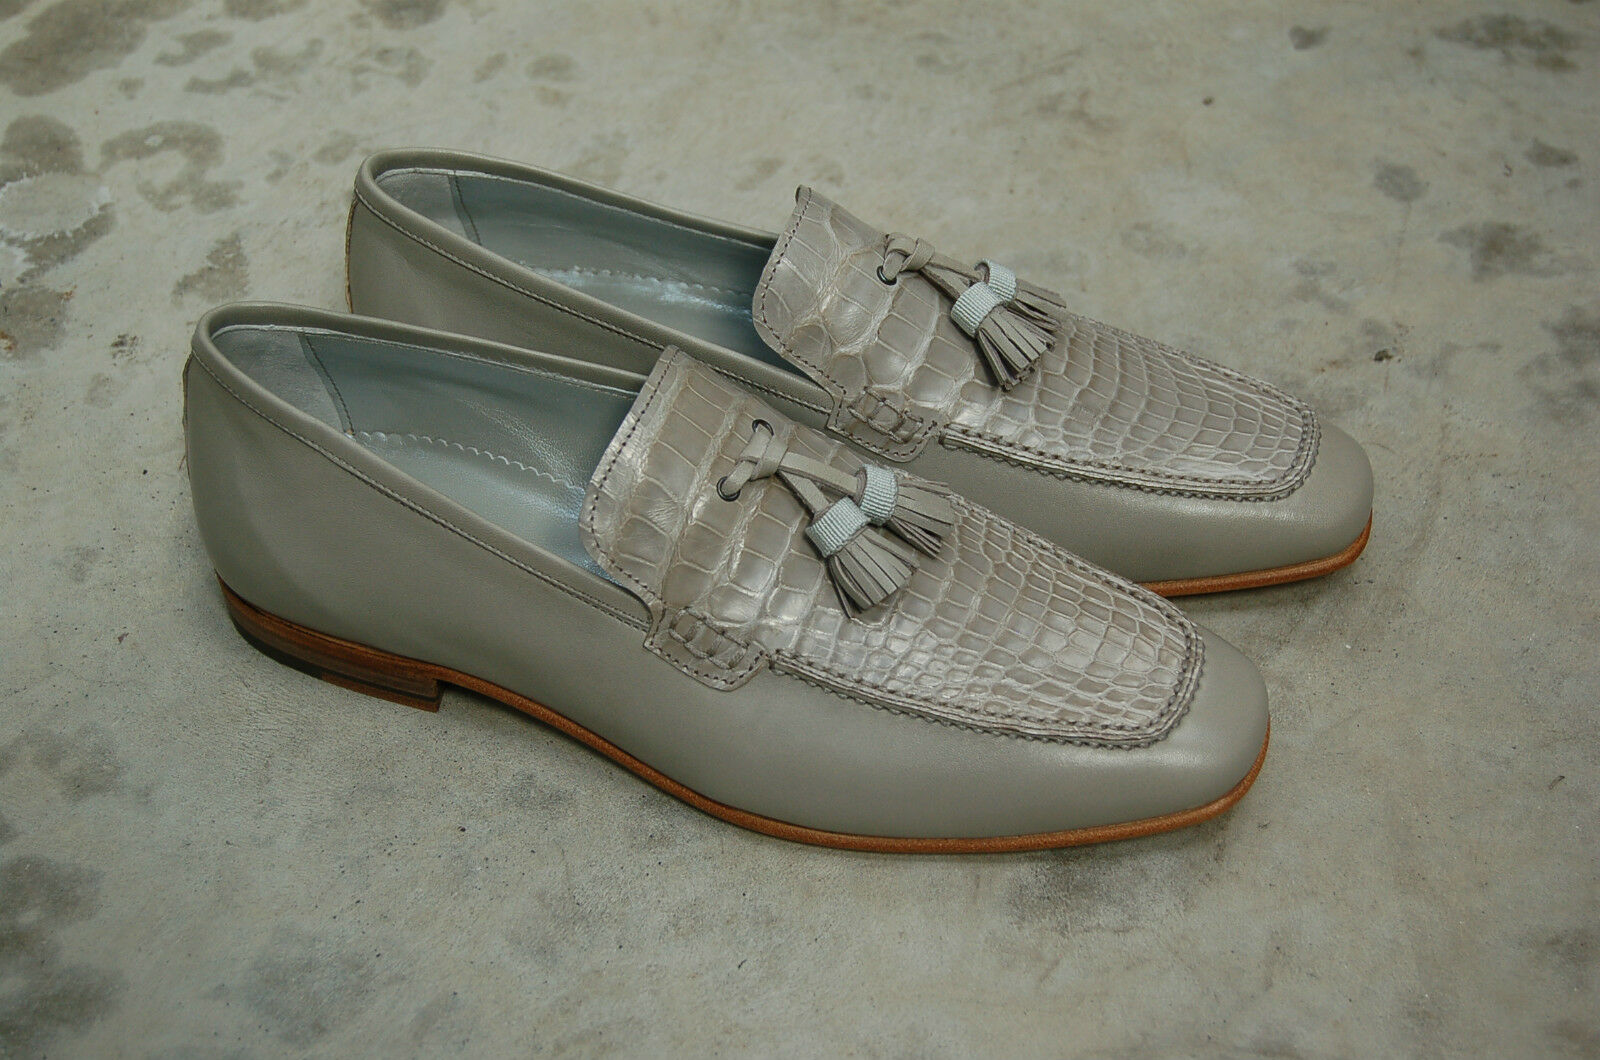 l'ultimo MAN - 41 - 7EU - TASSEL TASSEL TASSEL LOAFER - grigio KIDSKIN + GENUINE ALLIGATOR - LEATHER SOLE  garantito